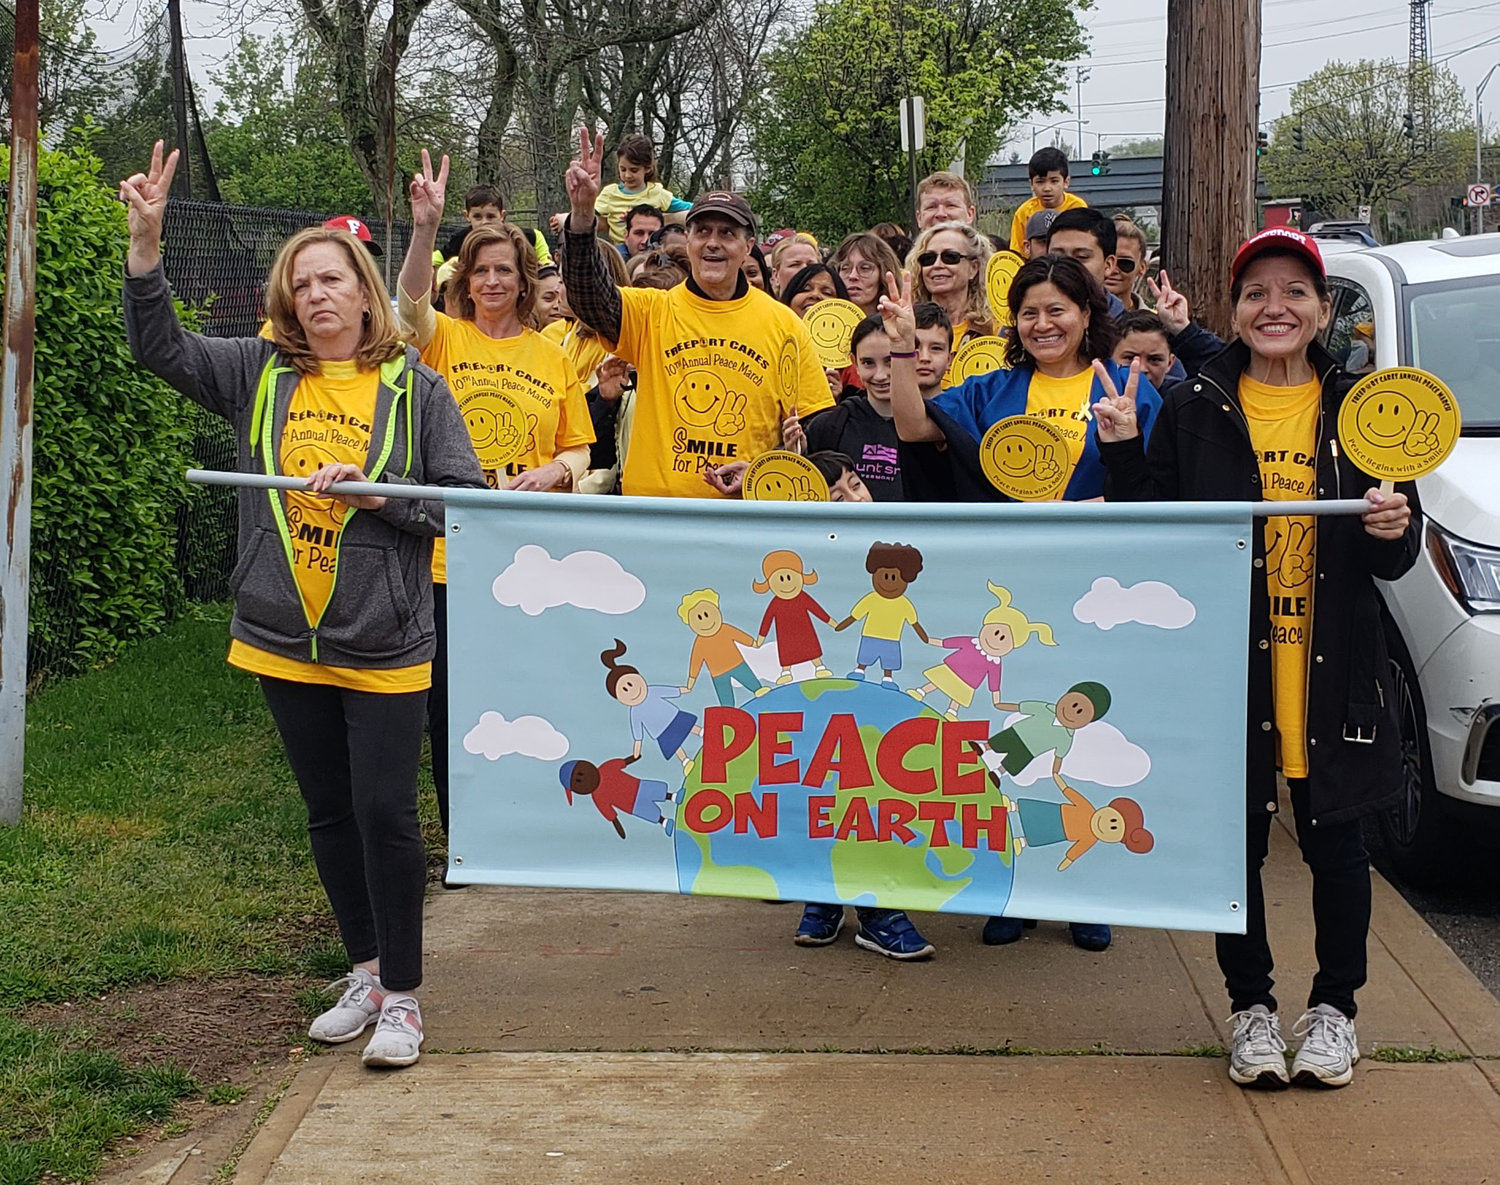 Making their way down Brookside Avenue in Freeport, marchers shared their message of peace and love.